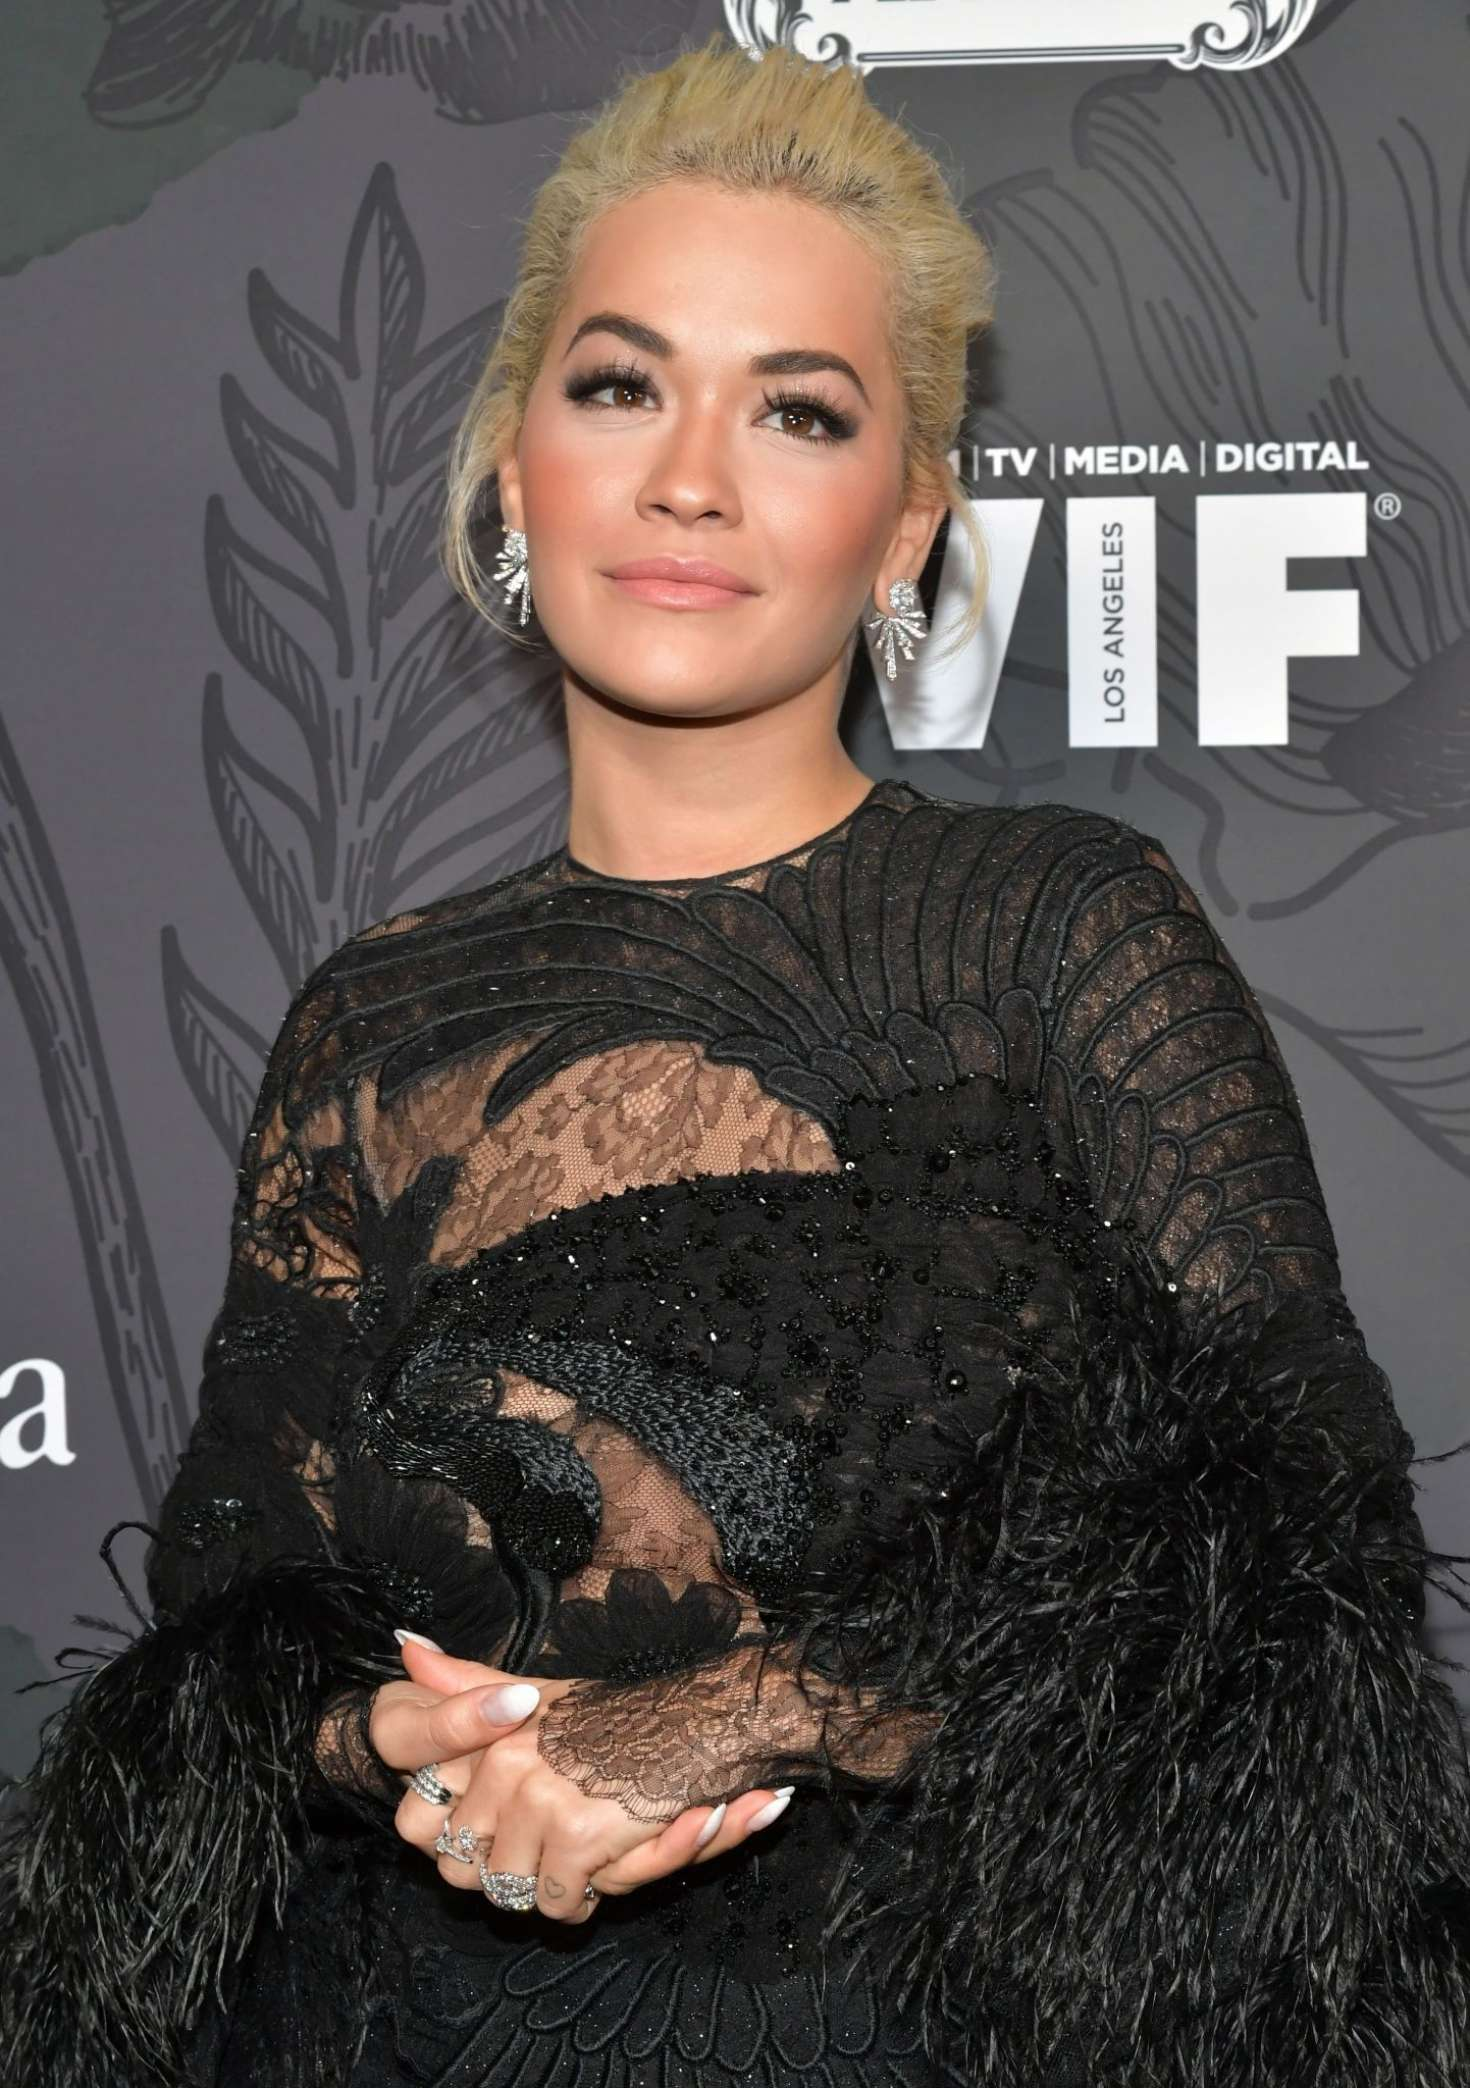 https://www.gotceleb.com/wp-content/uploads/photos/rita-ora/2019-women-in-film-oscar-party-in-beverly-hills/Rita-Ora:-2019-Women-In-Film-Oscar-Party--04.jpg